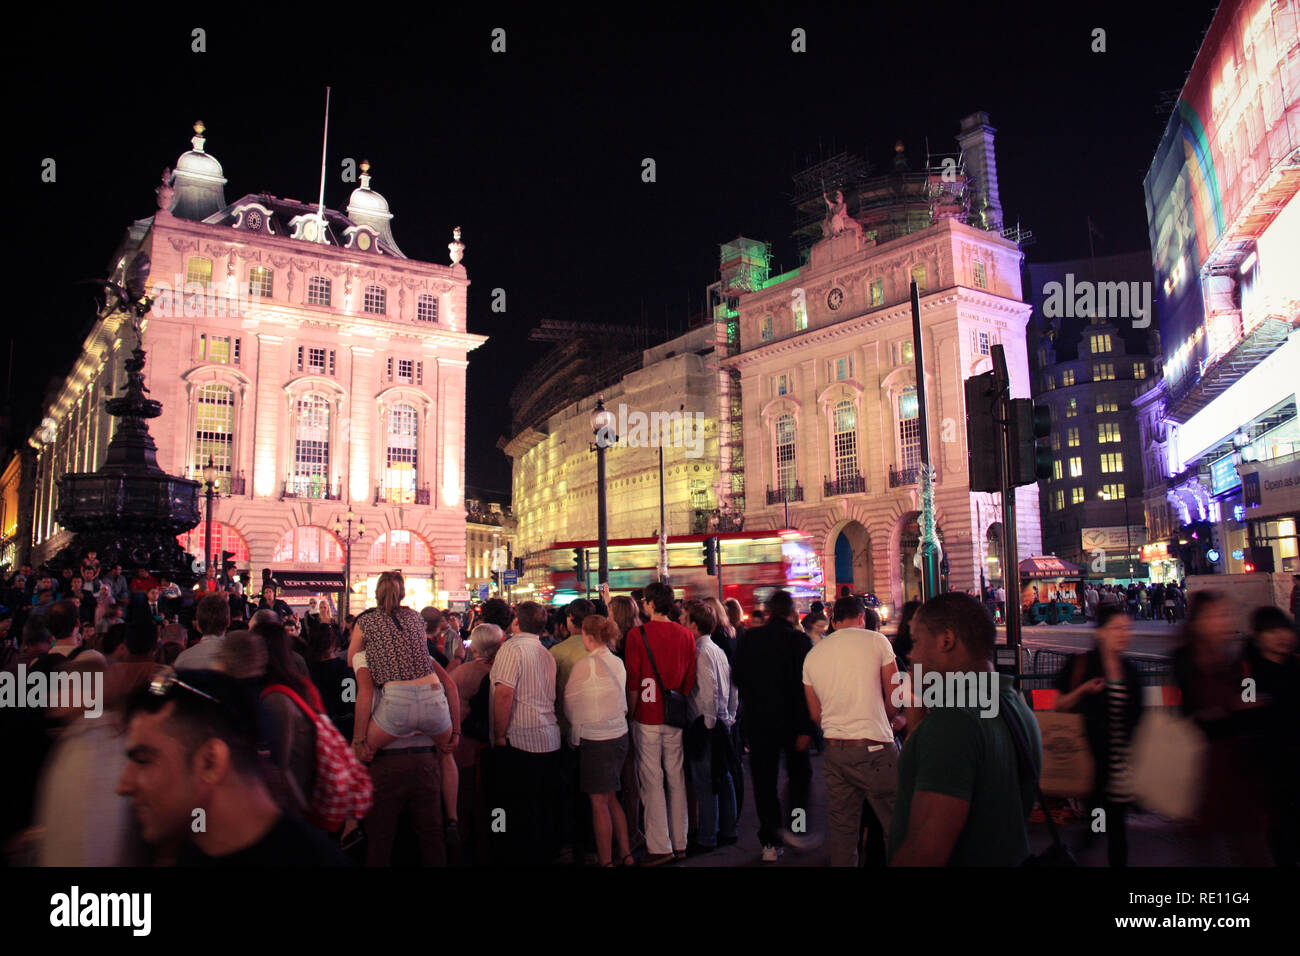 Crowd of people standing around the Shaftesbury Memorial Fountain at Piccadilly Circus in London, United Kingdom - Stock Image